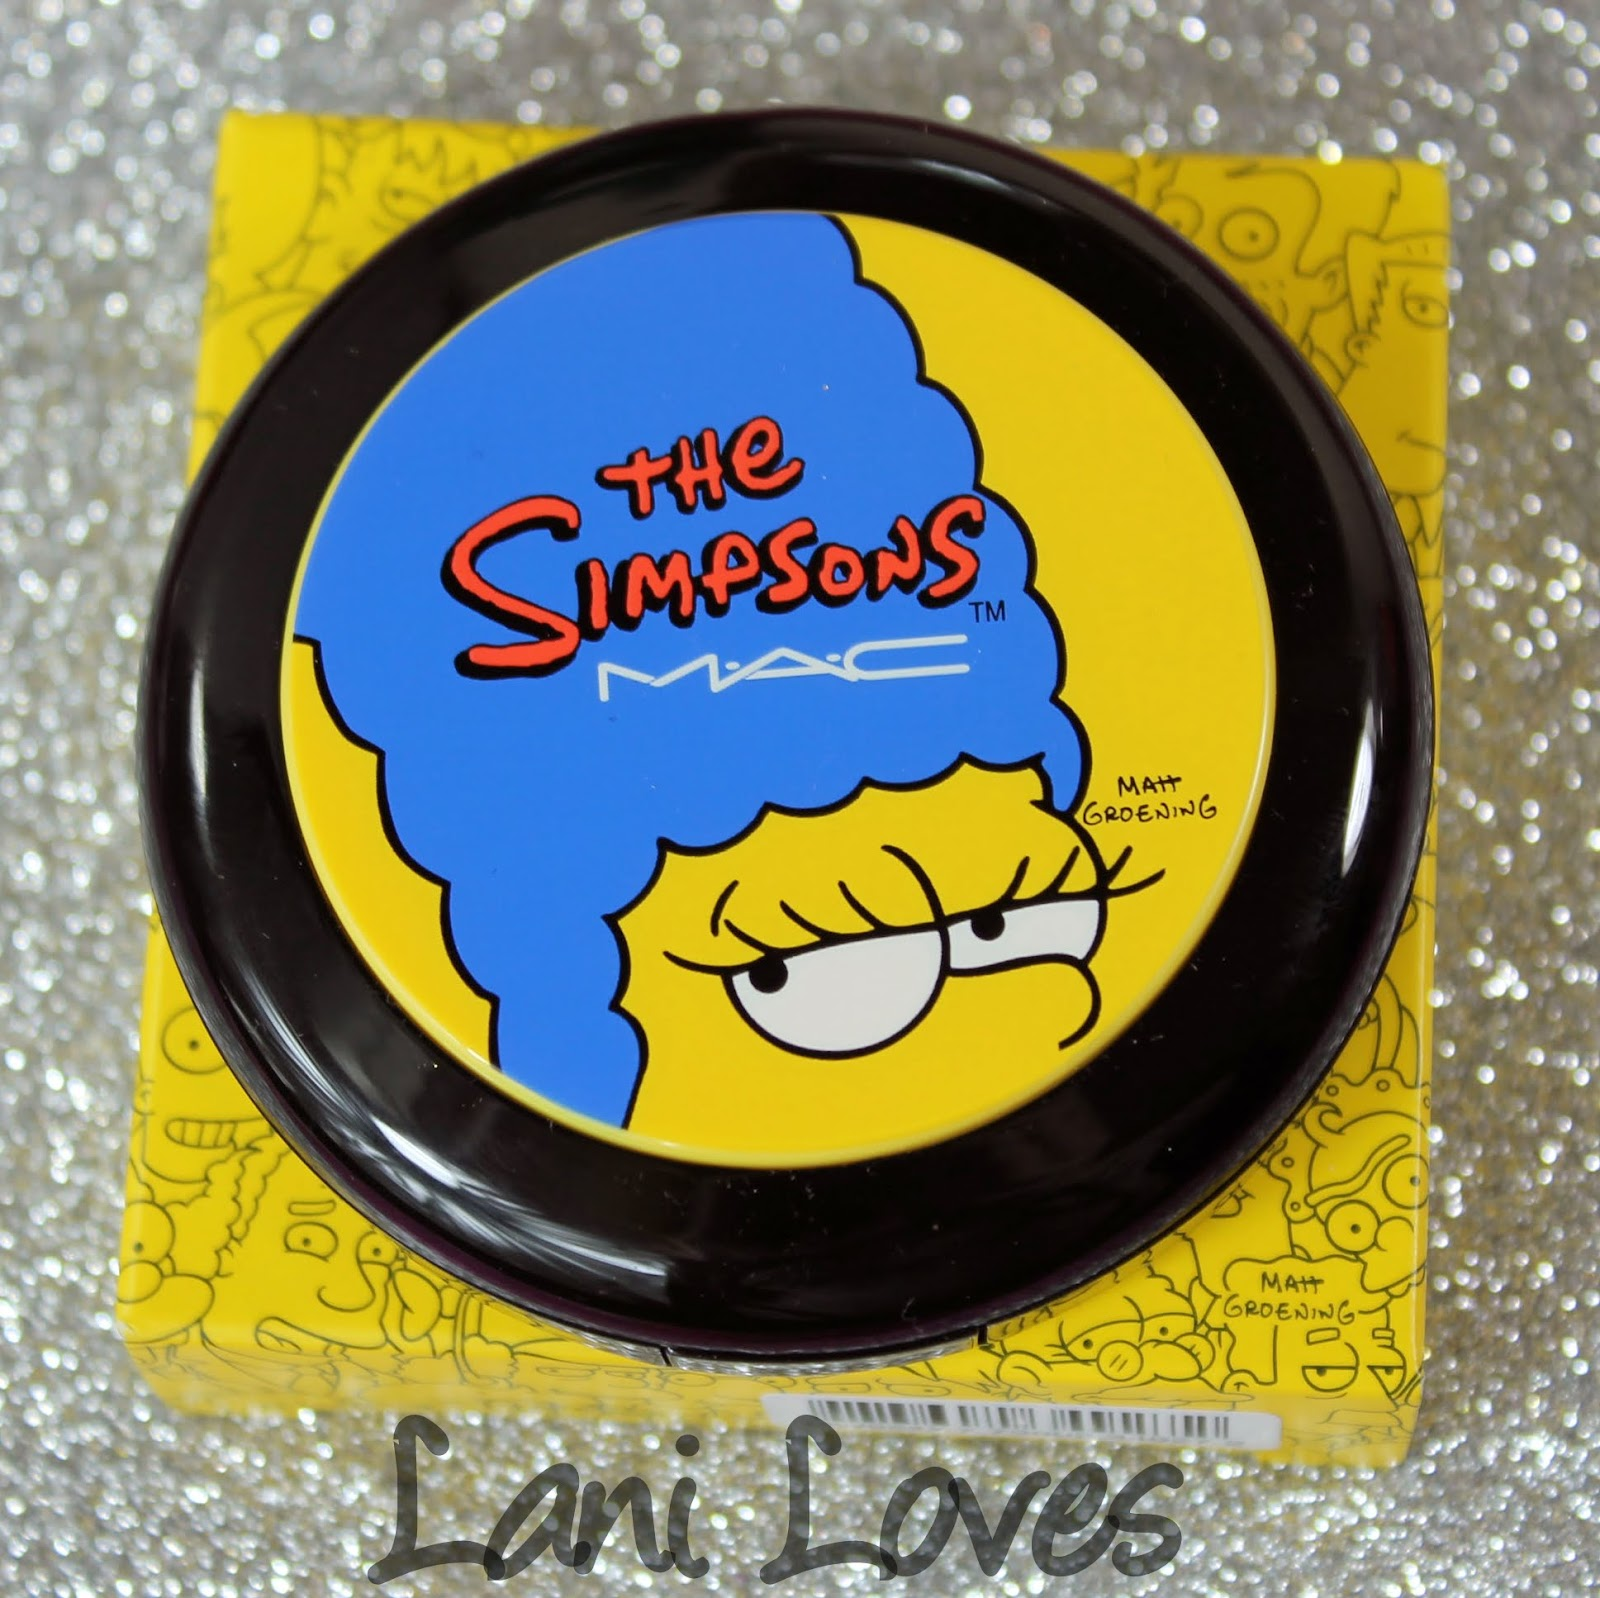 MAC Monday: MAC X The Simpsons - Sideshow You and Pink Sprinkles Blush Swatches & Review